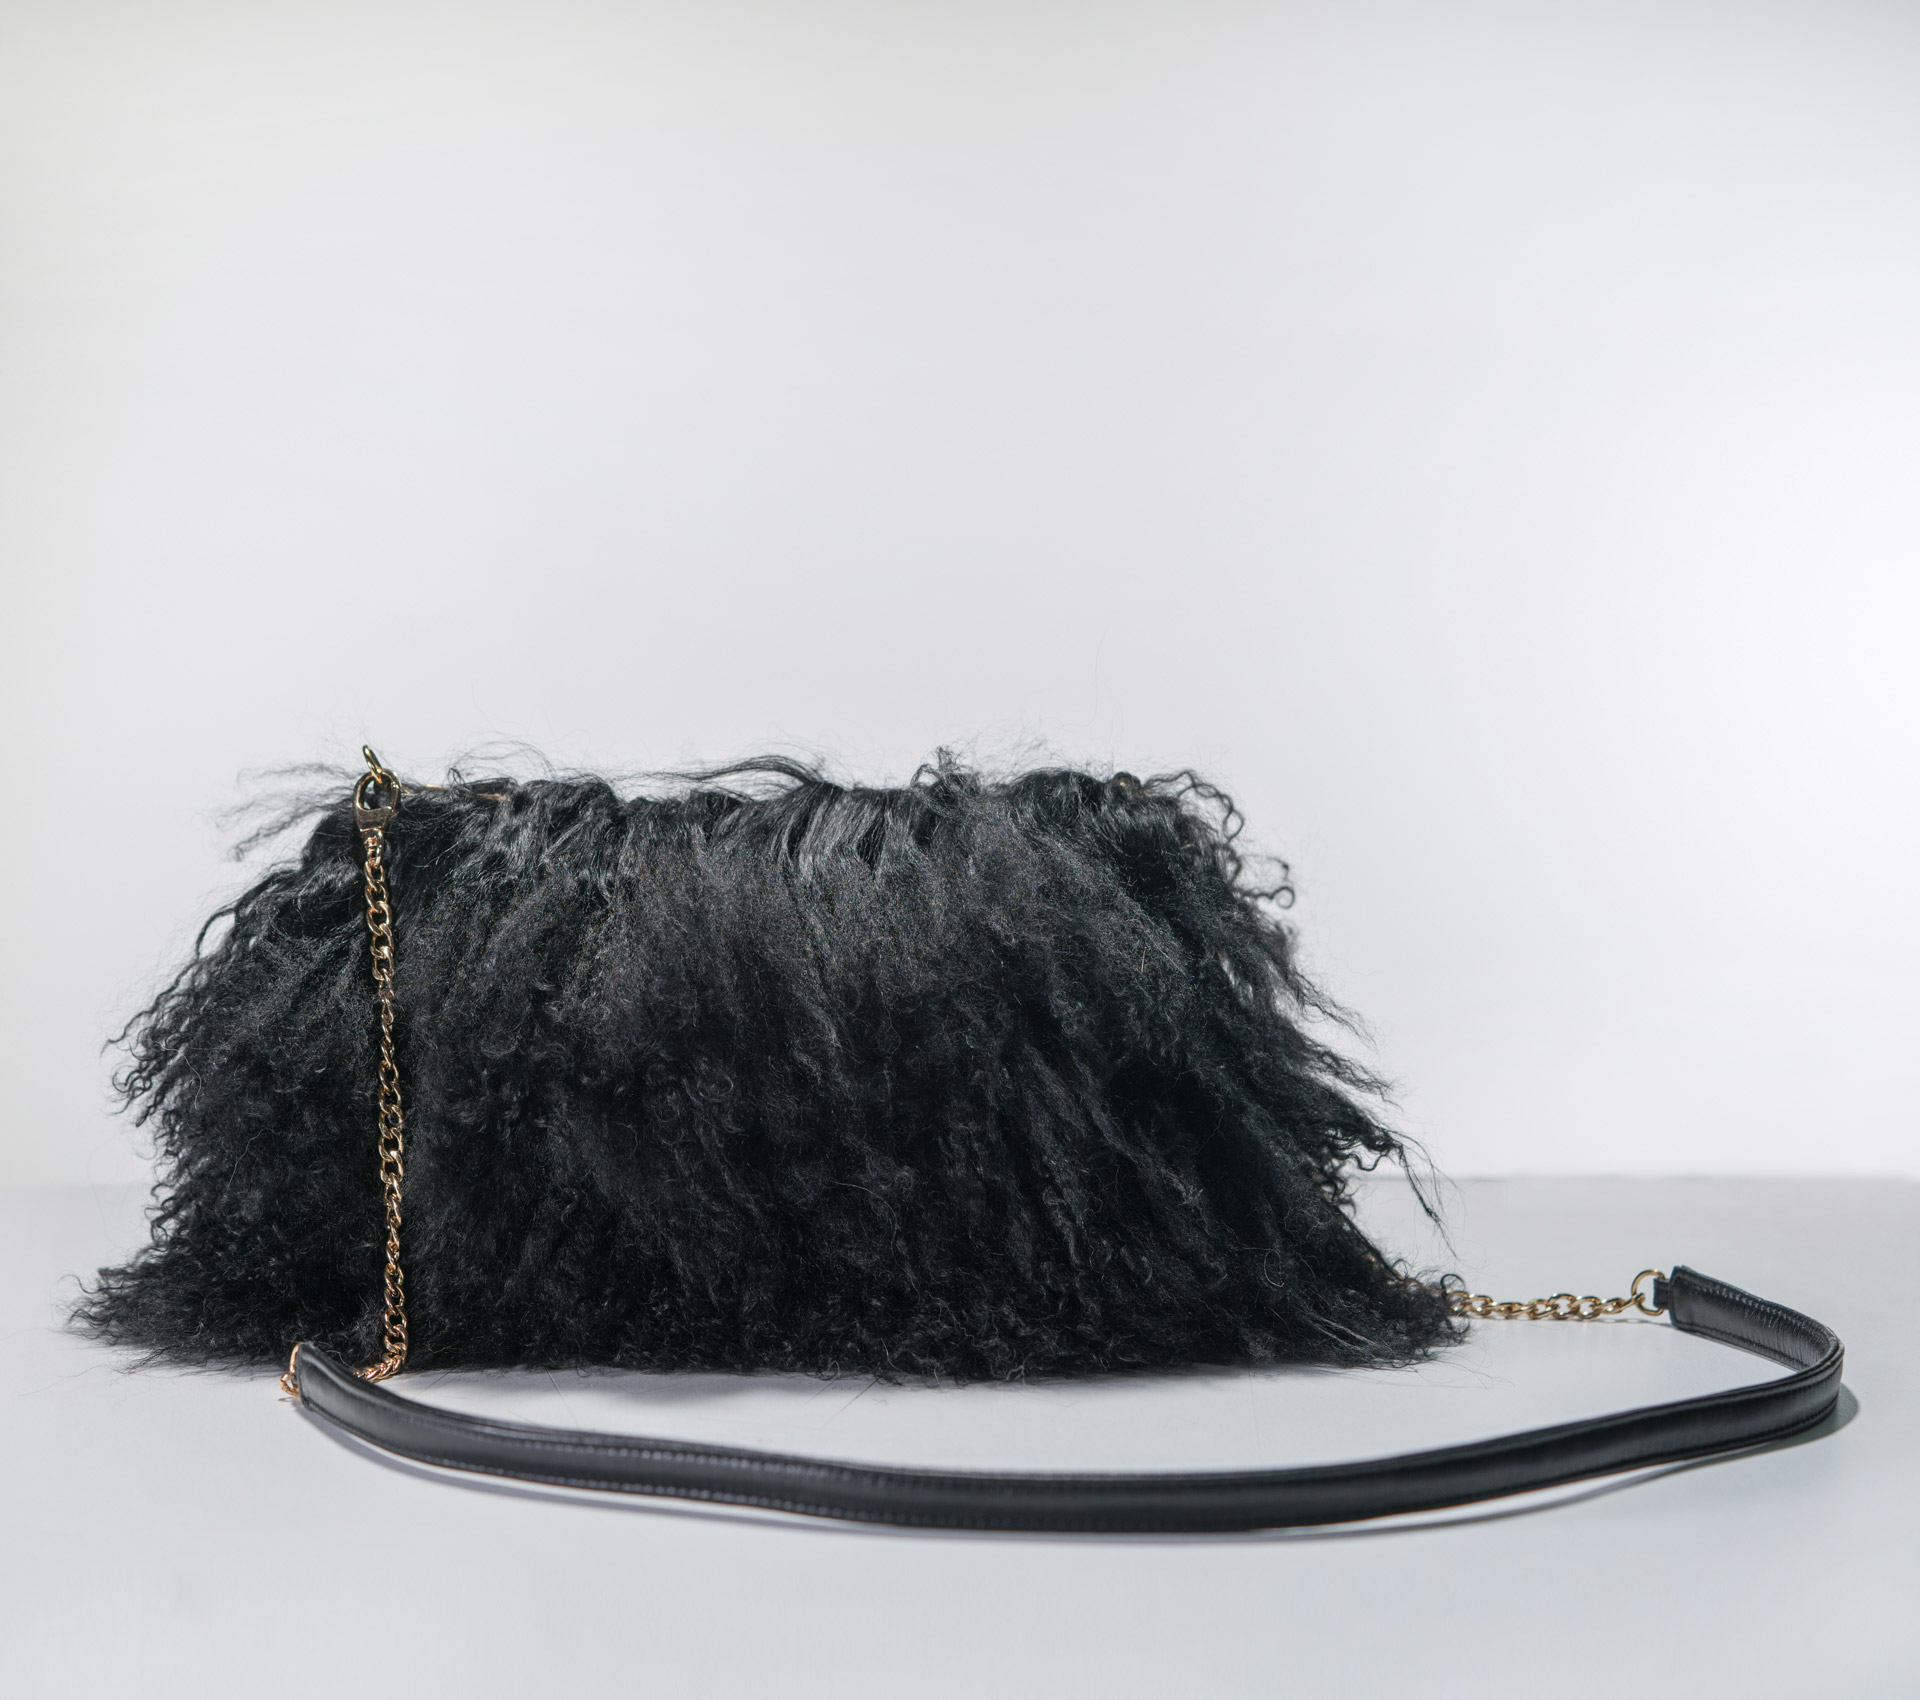 Black Mongolian Lamb Fur Bag- 100% Real Fur Coats - Haute Acorn f155cdc69b7ab